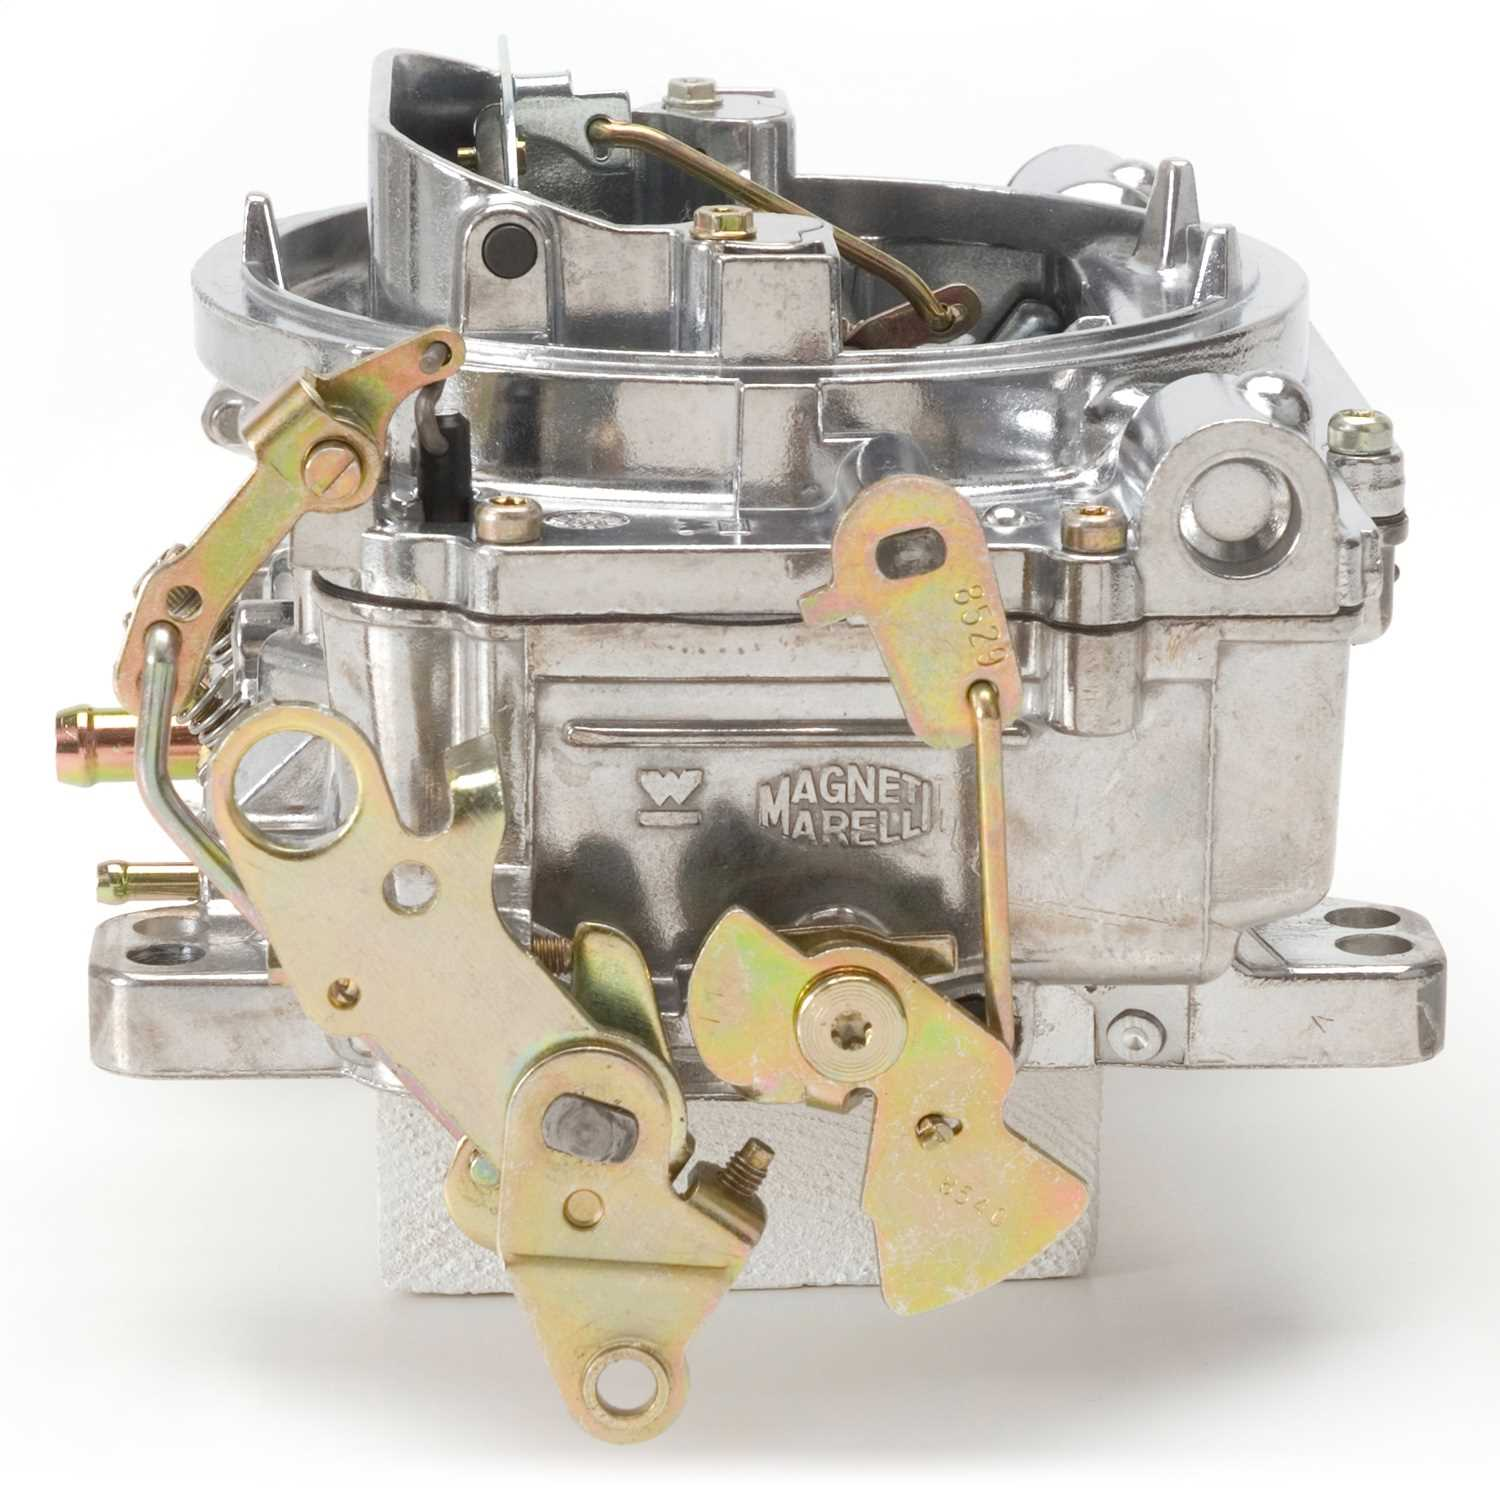 E-Force Enforcer Supercharger Carburetor - Ntyce Motorsports